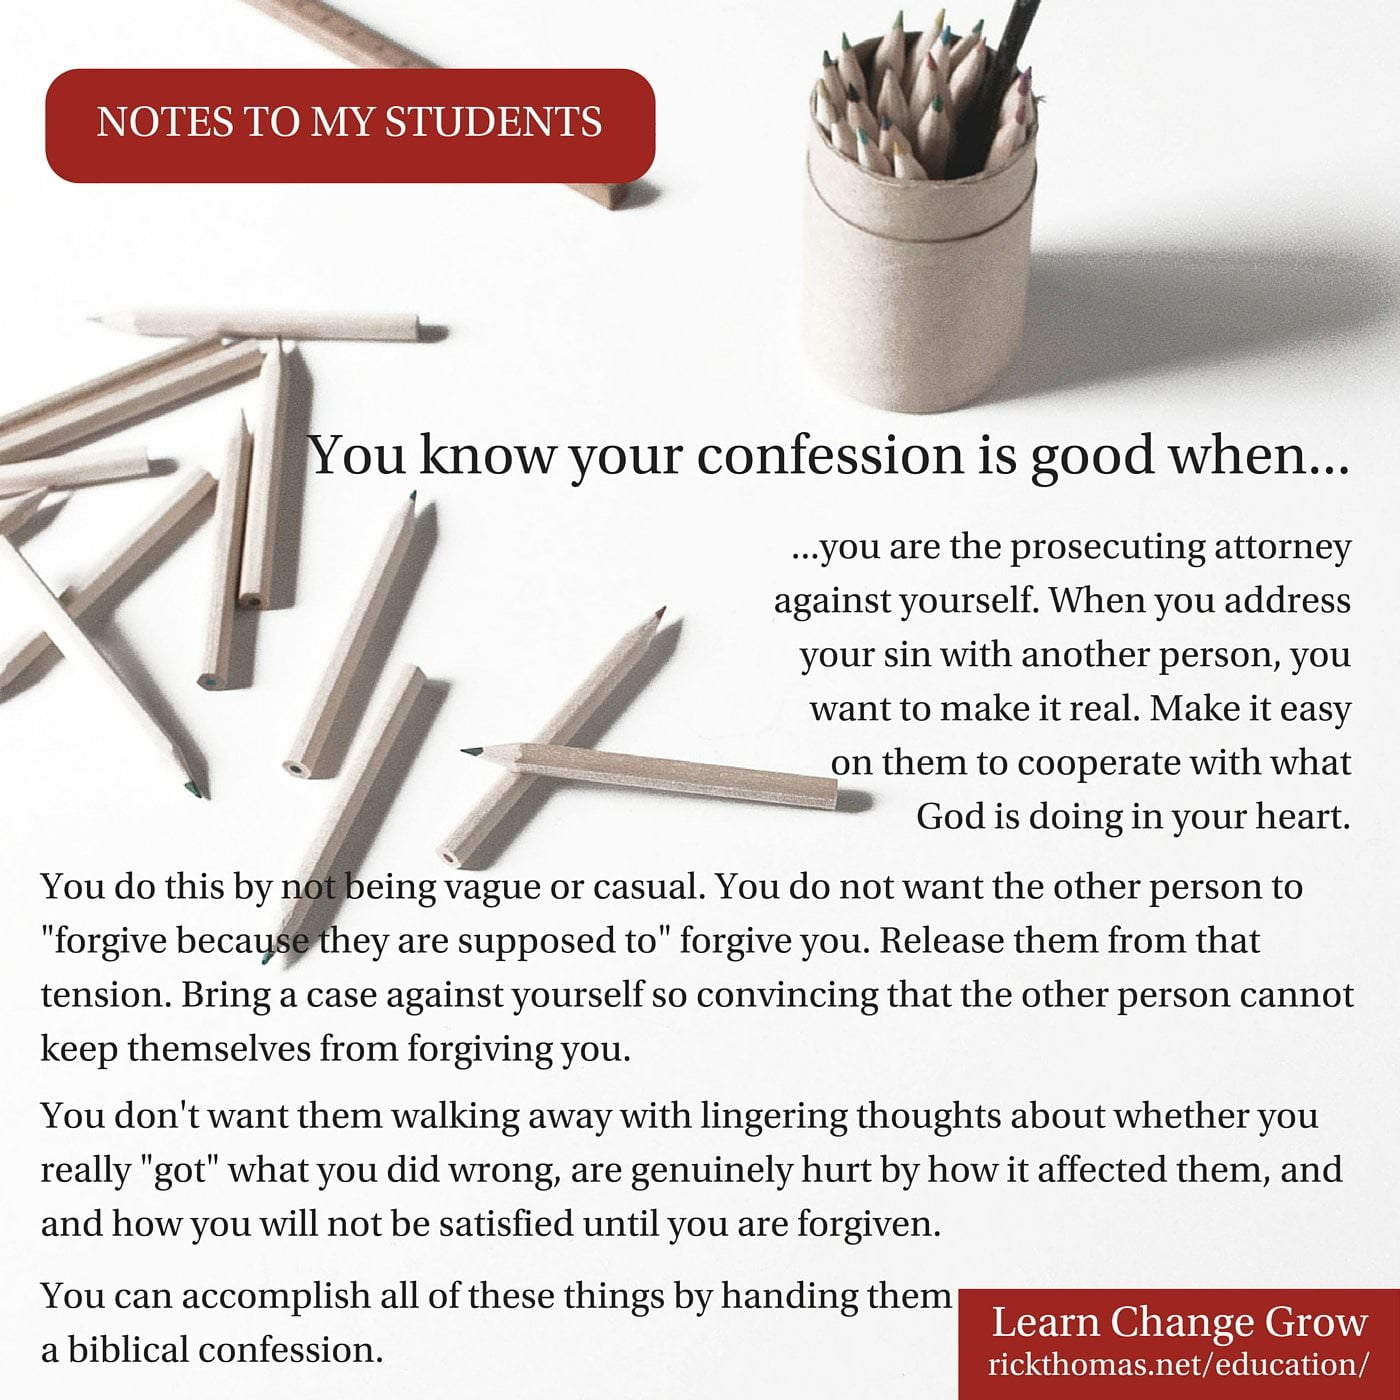 NOTE_ You know your confession was good when...